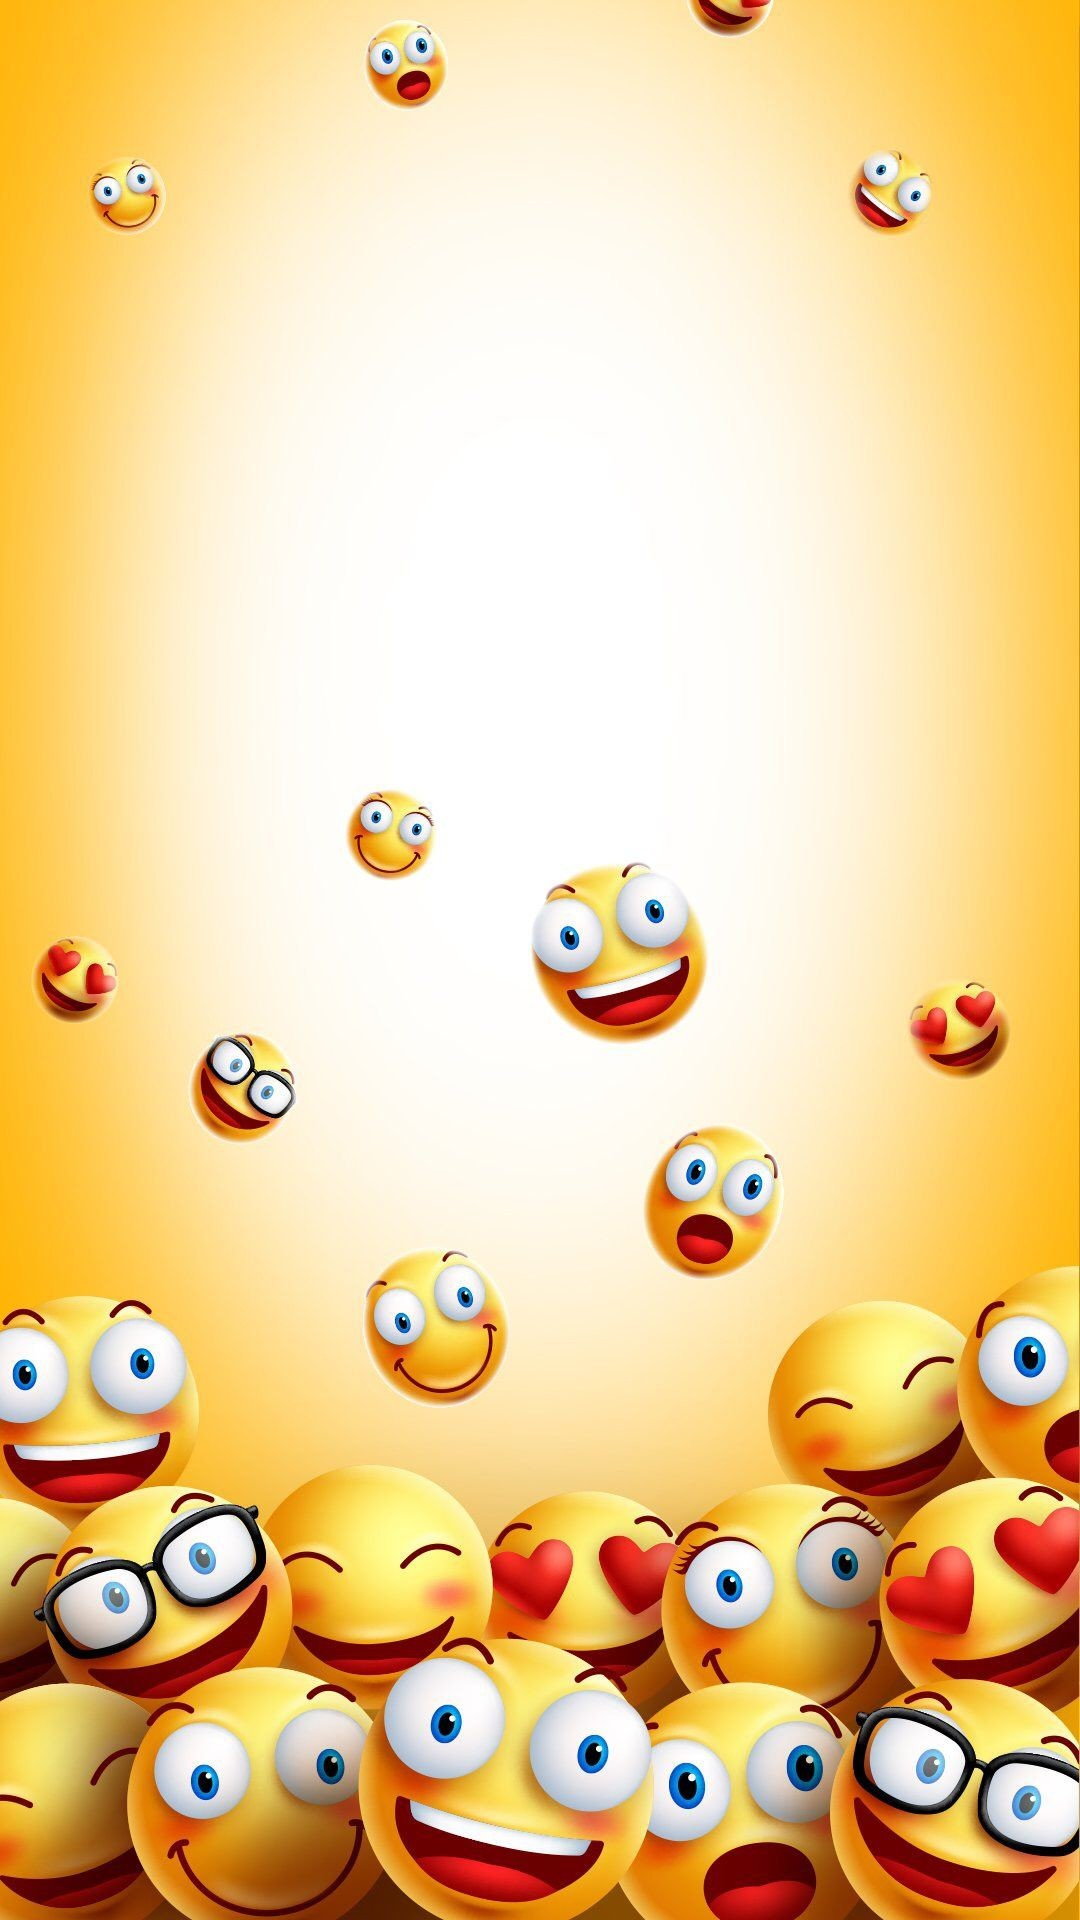 Funny Emoji Wallpapers (77+ images)